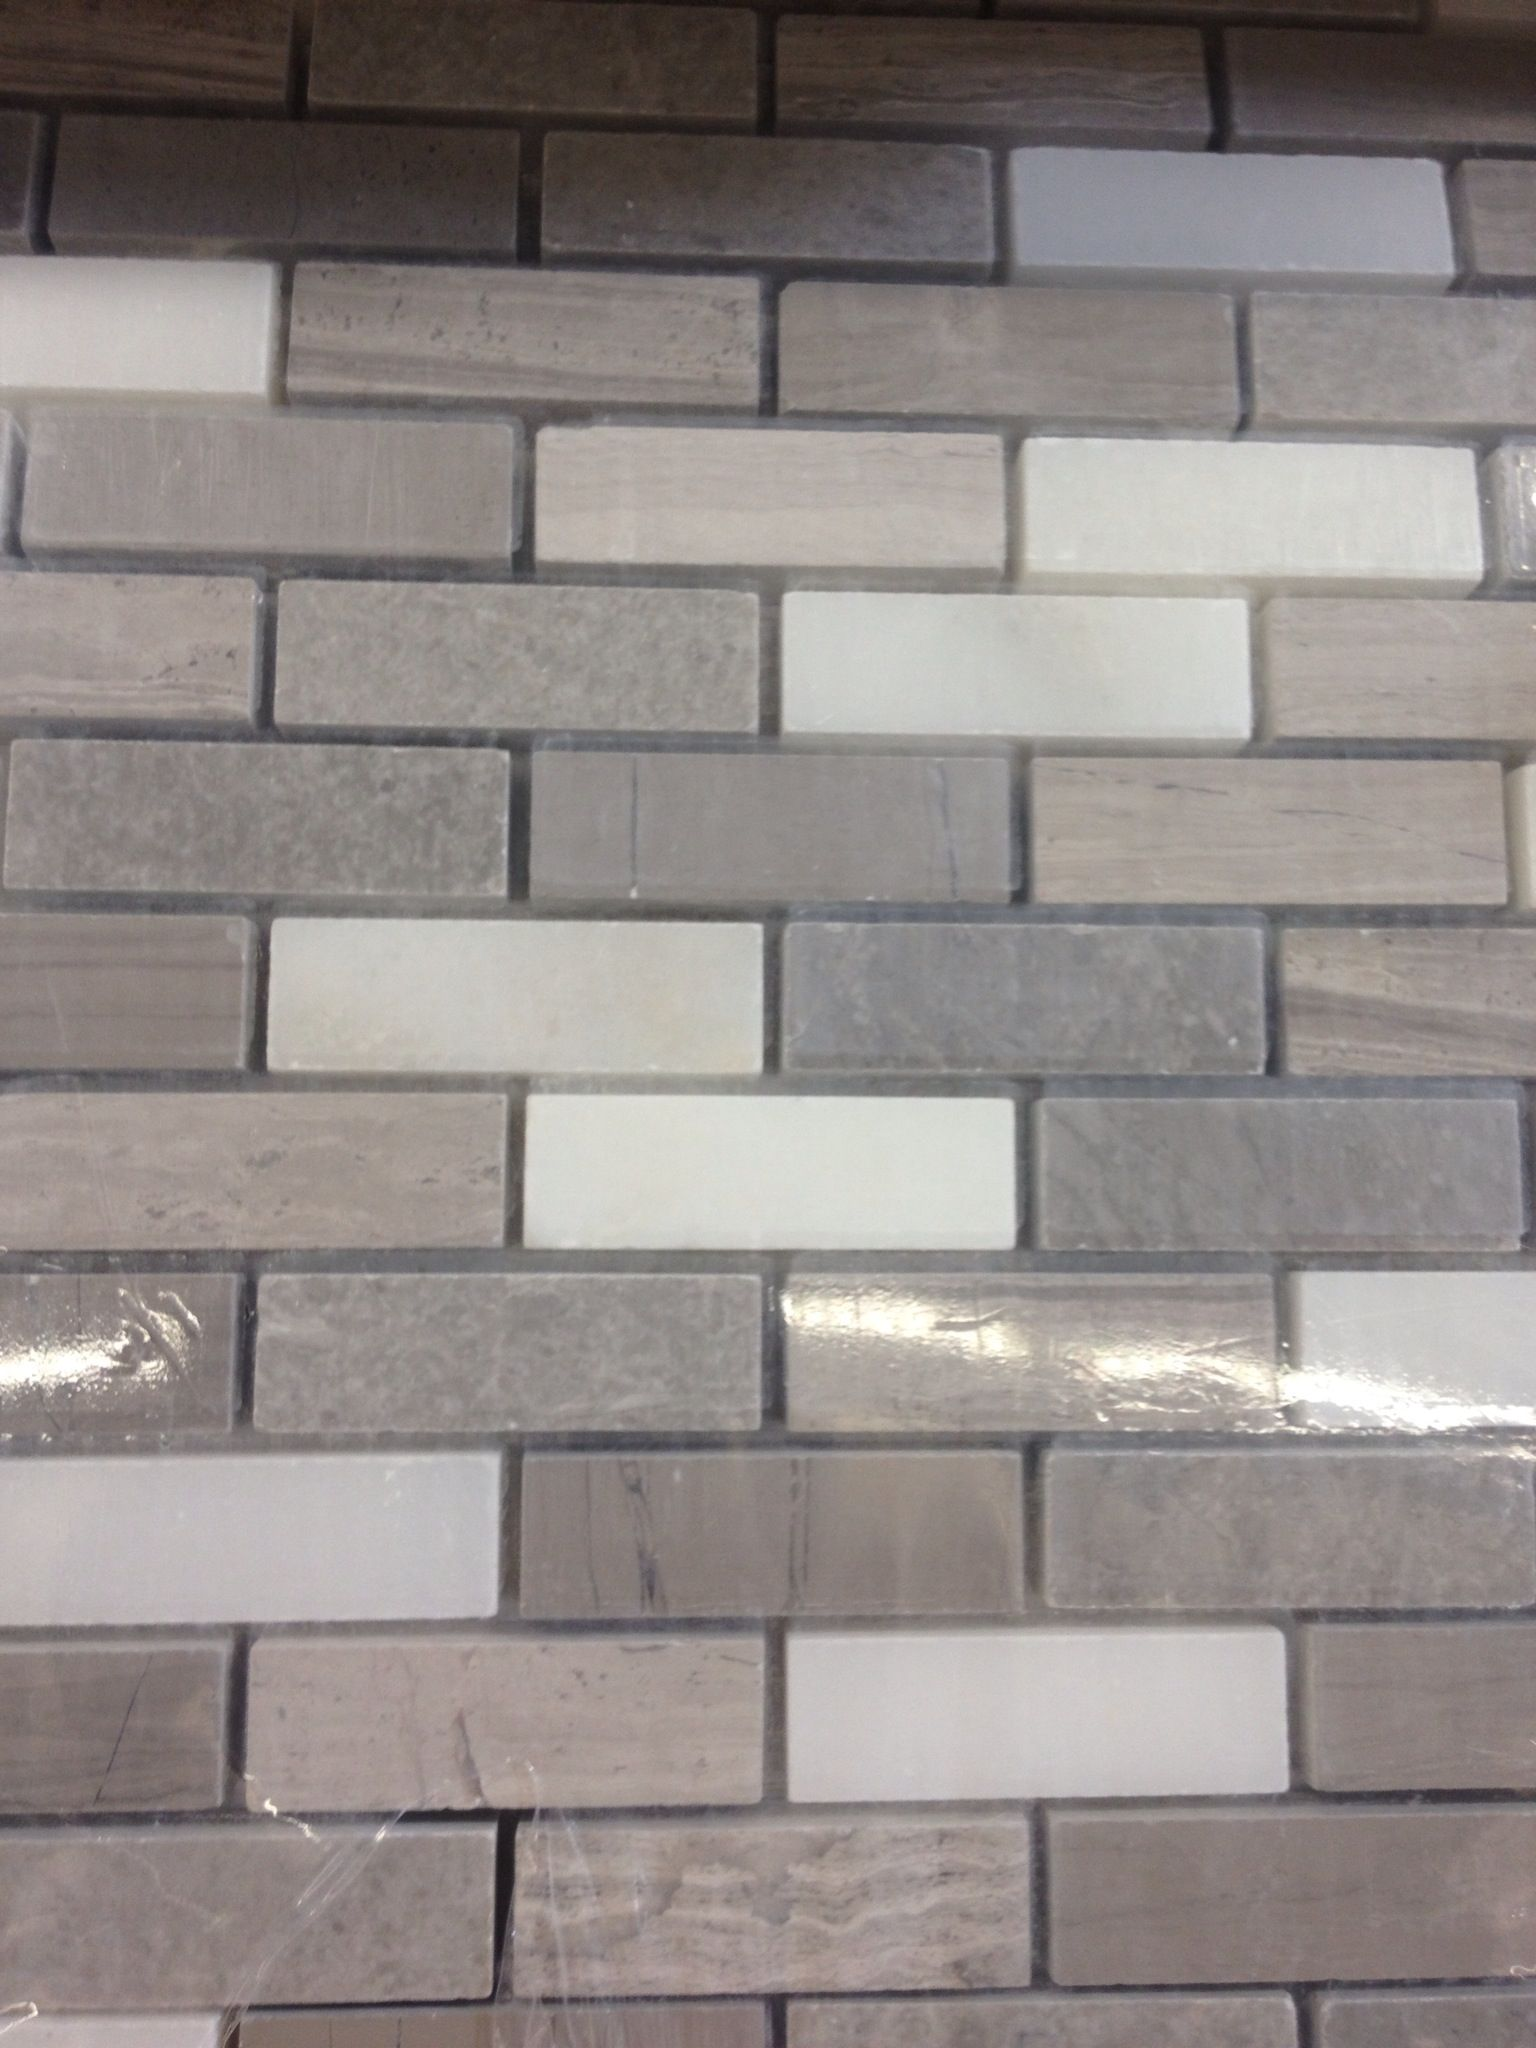 - Backsplash Home Depot Arctic Storm Home Depot Backsplash, Tile